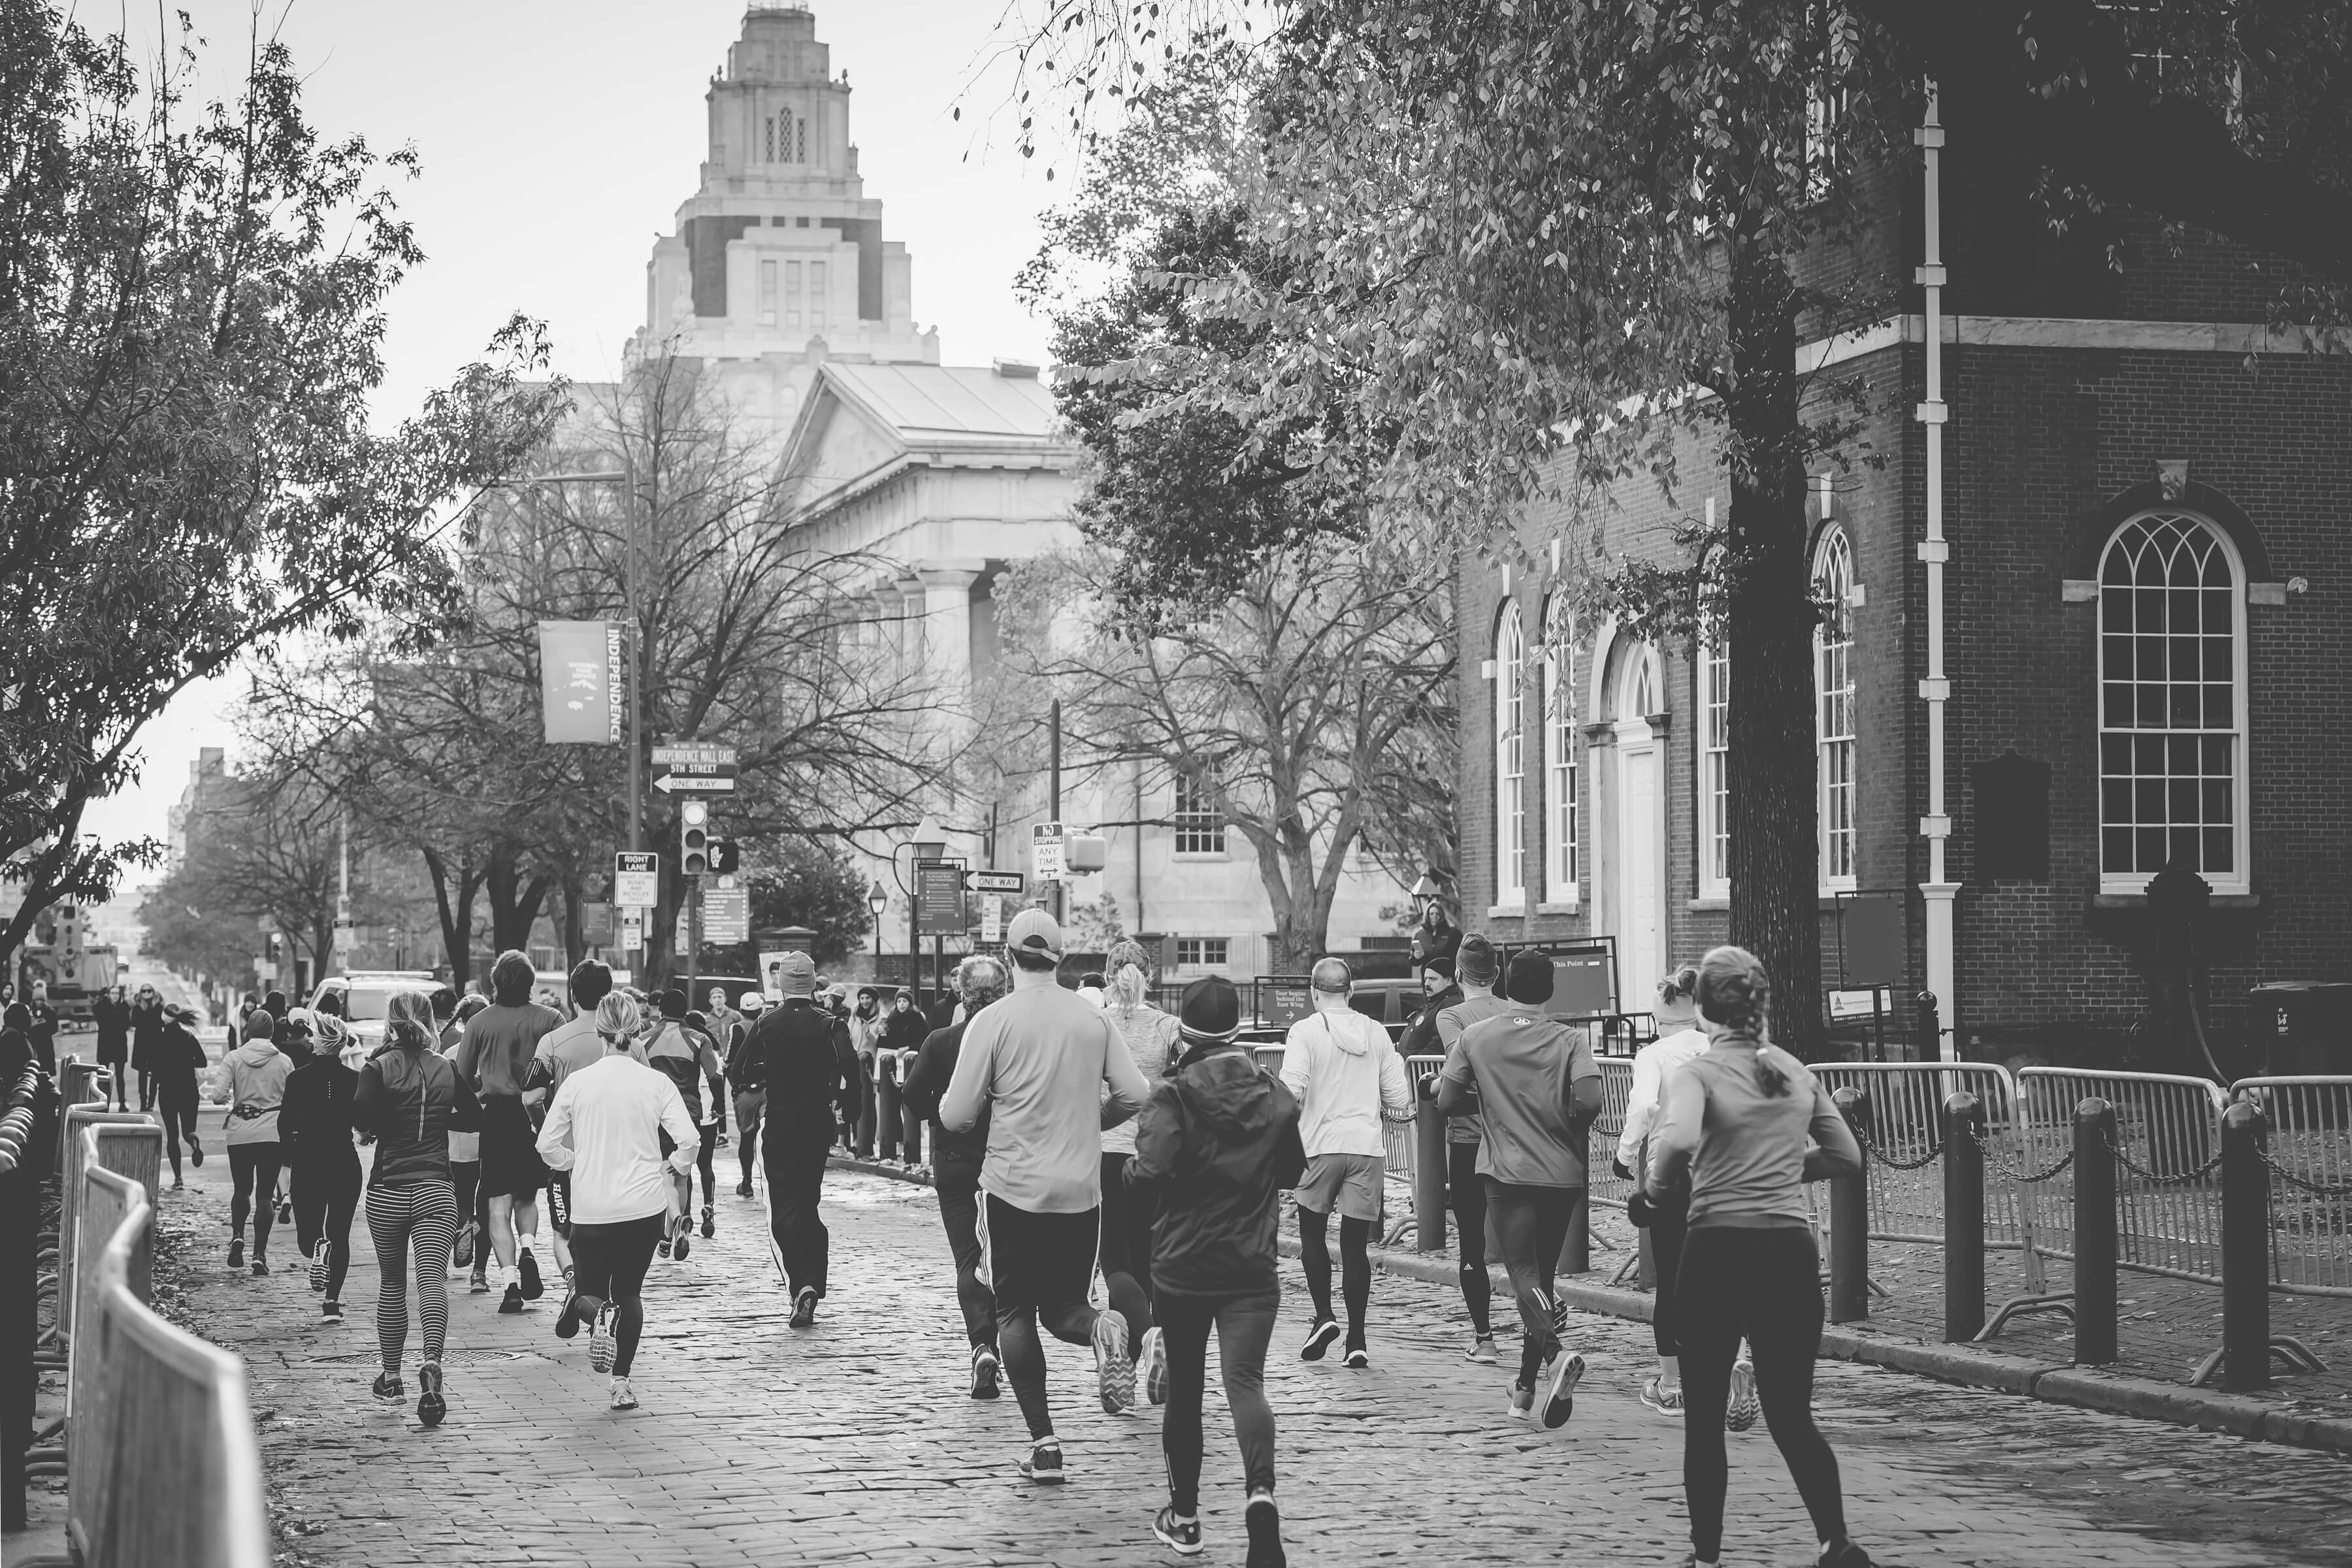 People Running in a City